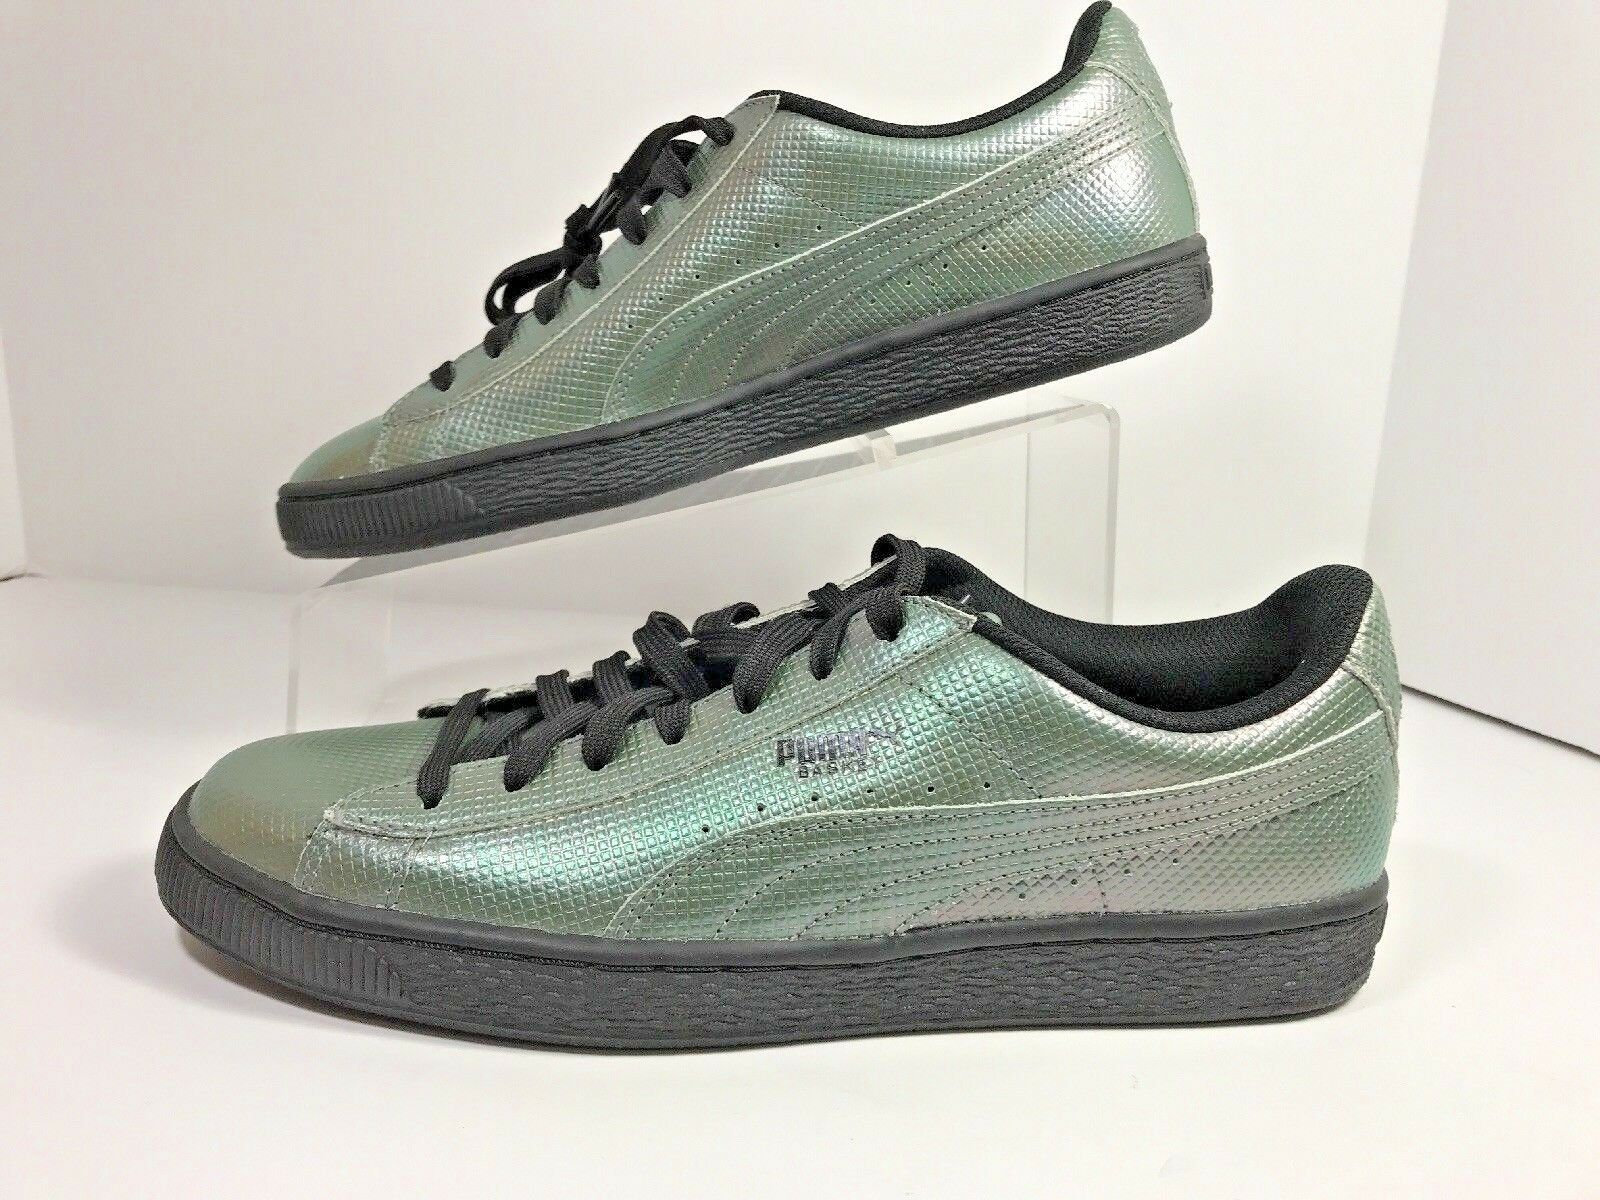 NEW With Out BOX Puma Basket Green Holographic Sneaker Mens Sz 7.5    182